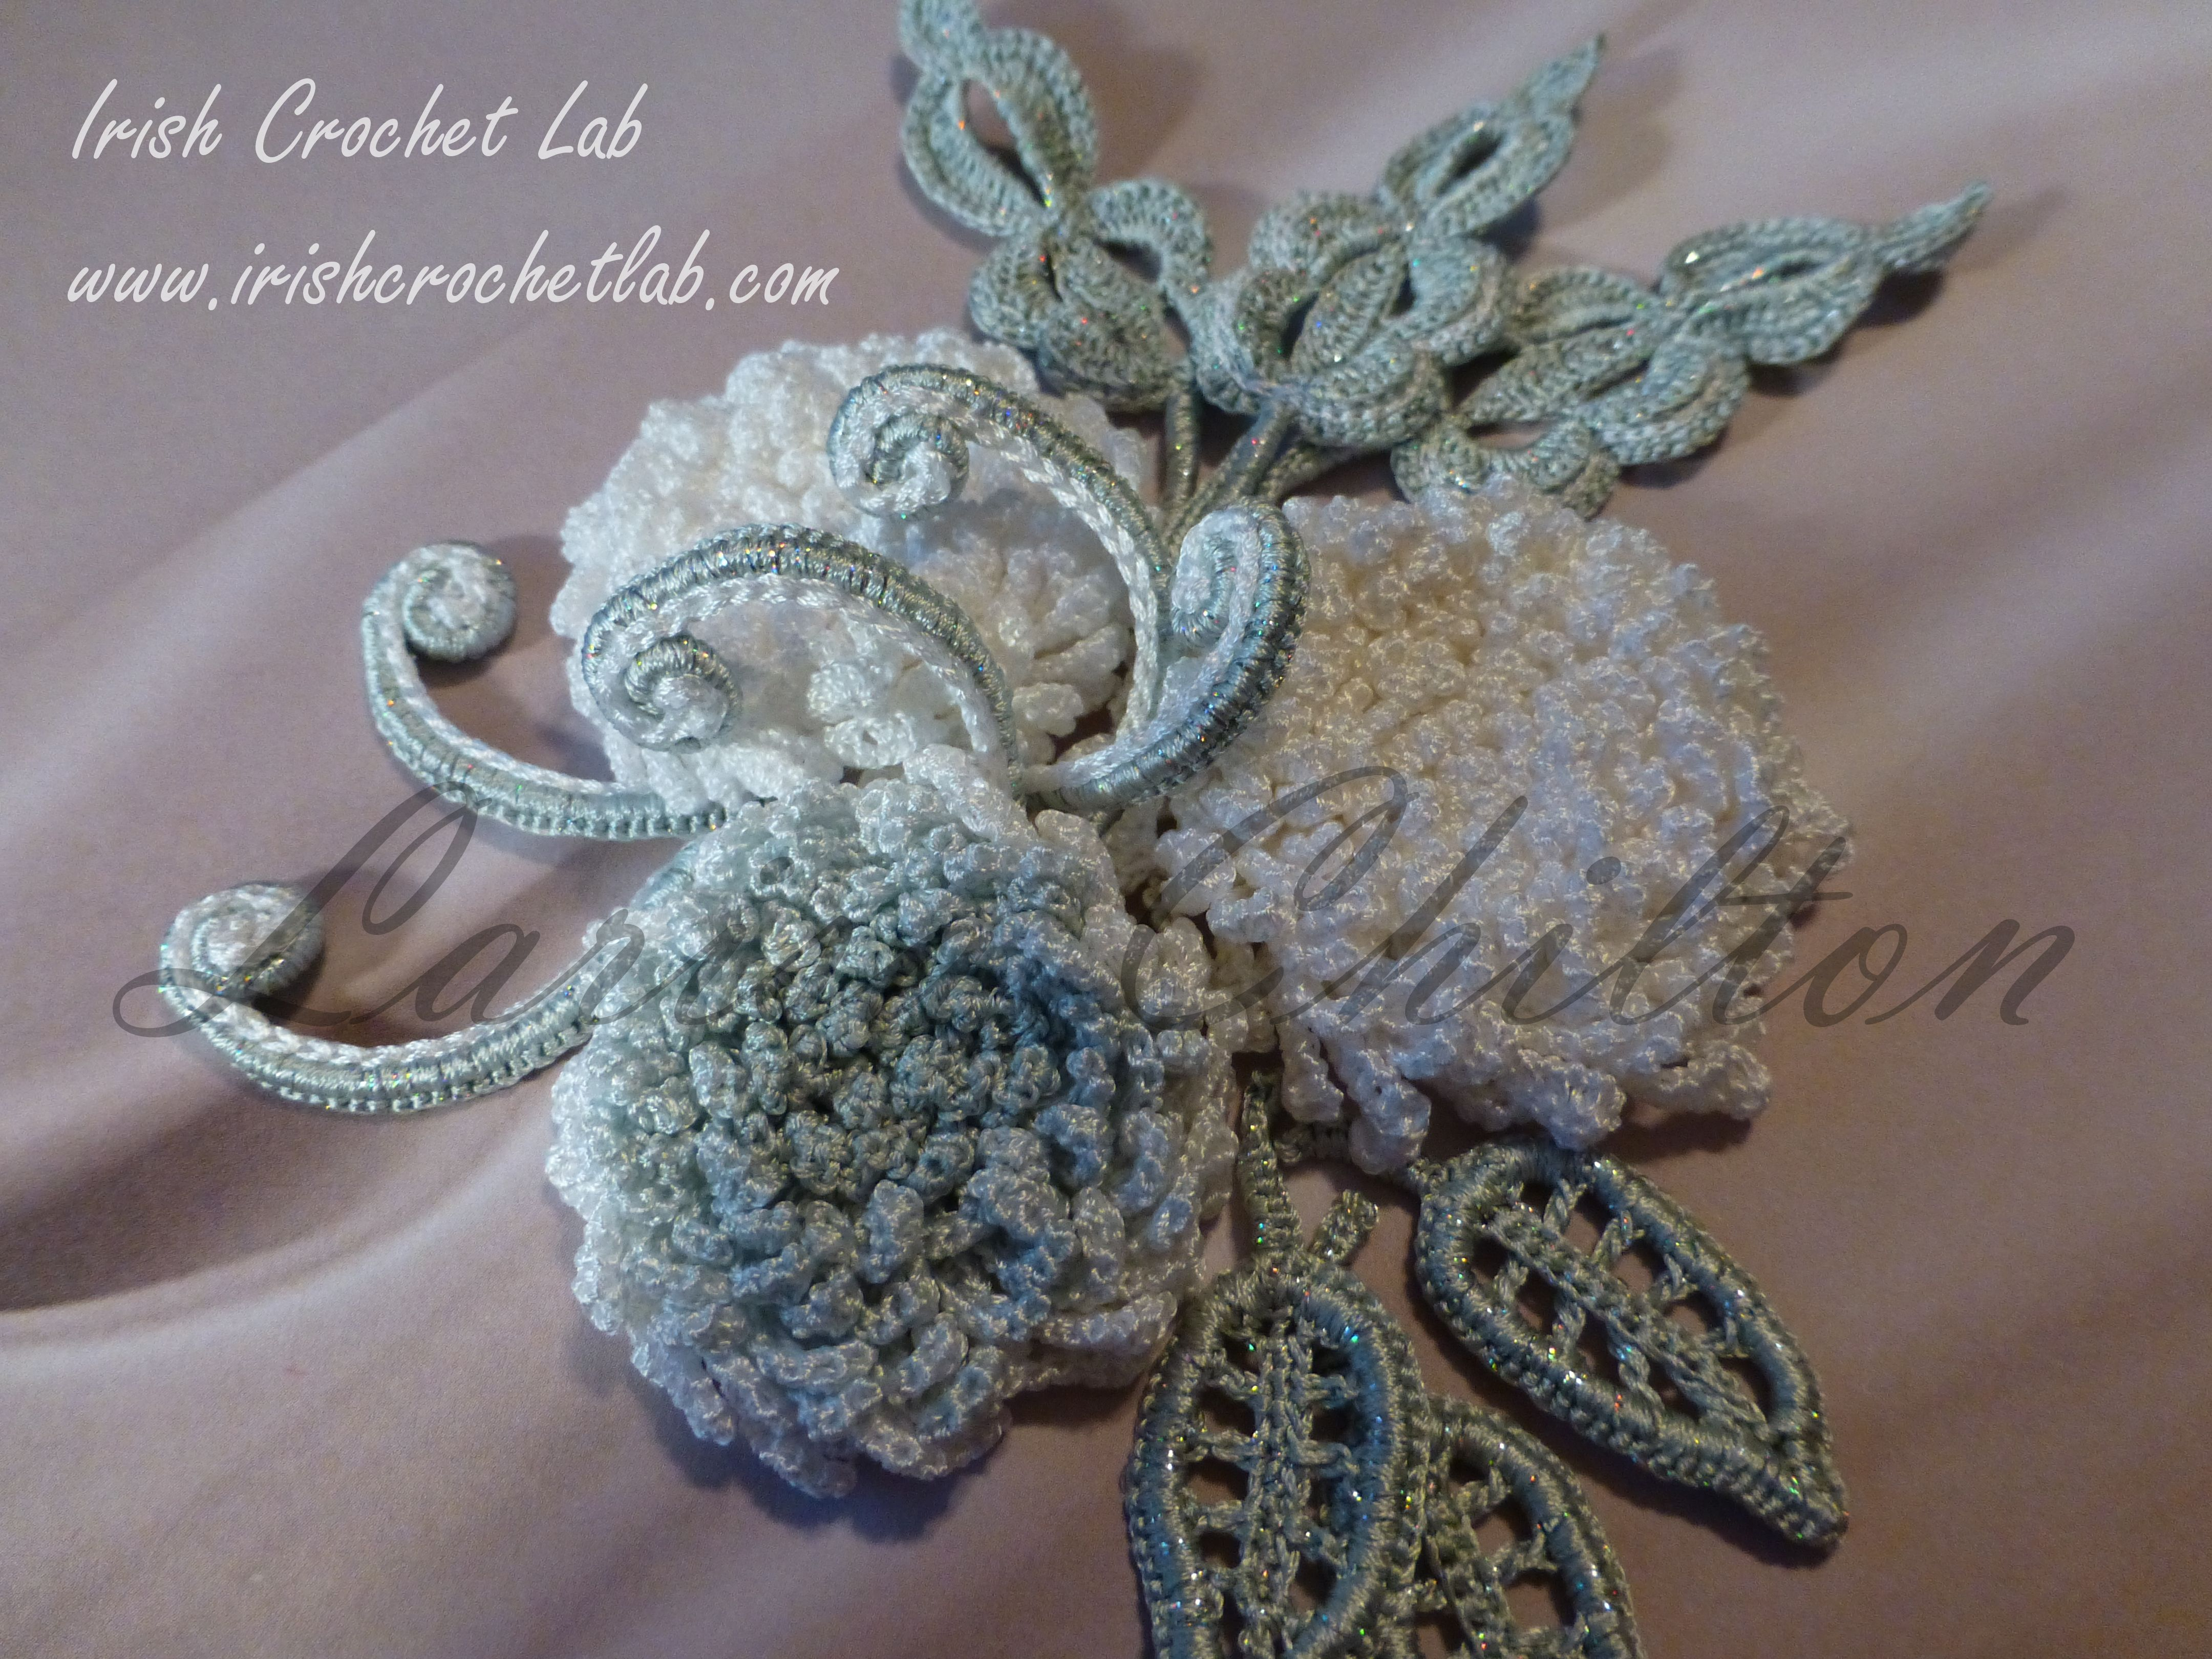 Chrysanthemum crocheted flowers pinterest chrysanthemums irish crochet lab is a detailed online course of how to make irish crochet lace it includes detailed written instructions patterns and video tutorials bankloansurffo Gallery